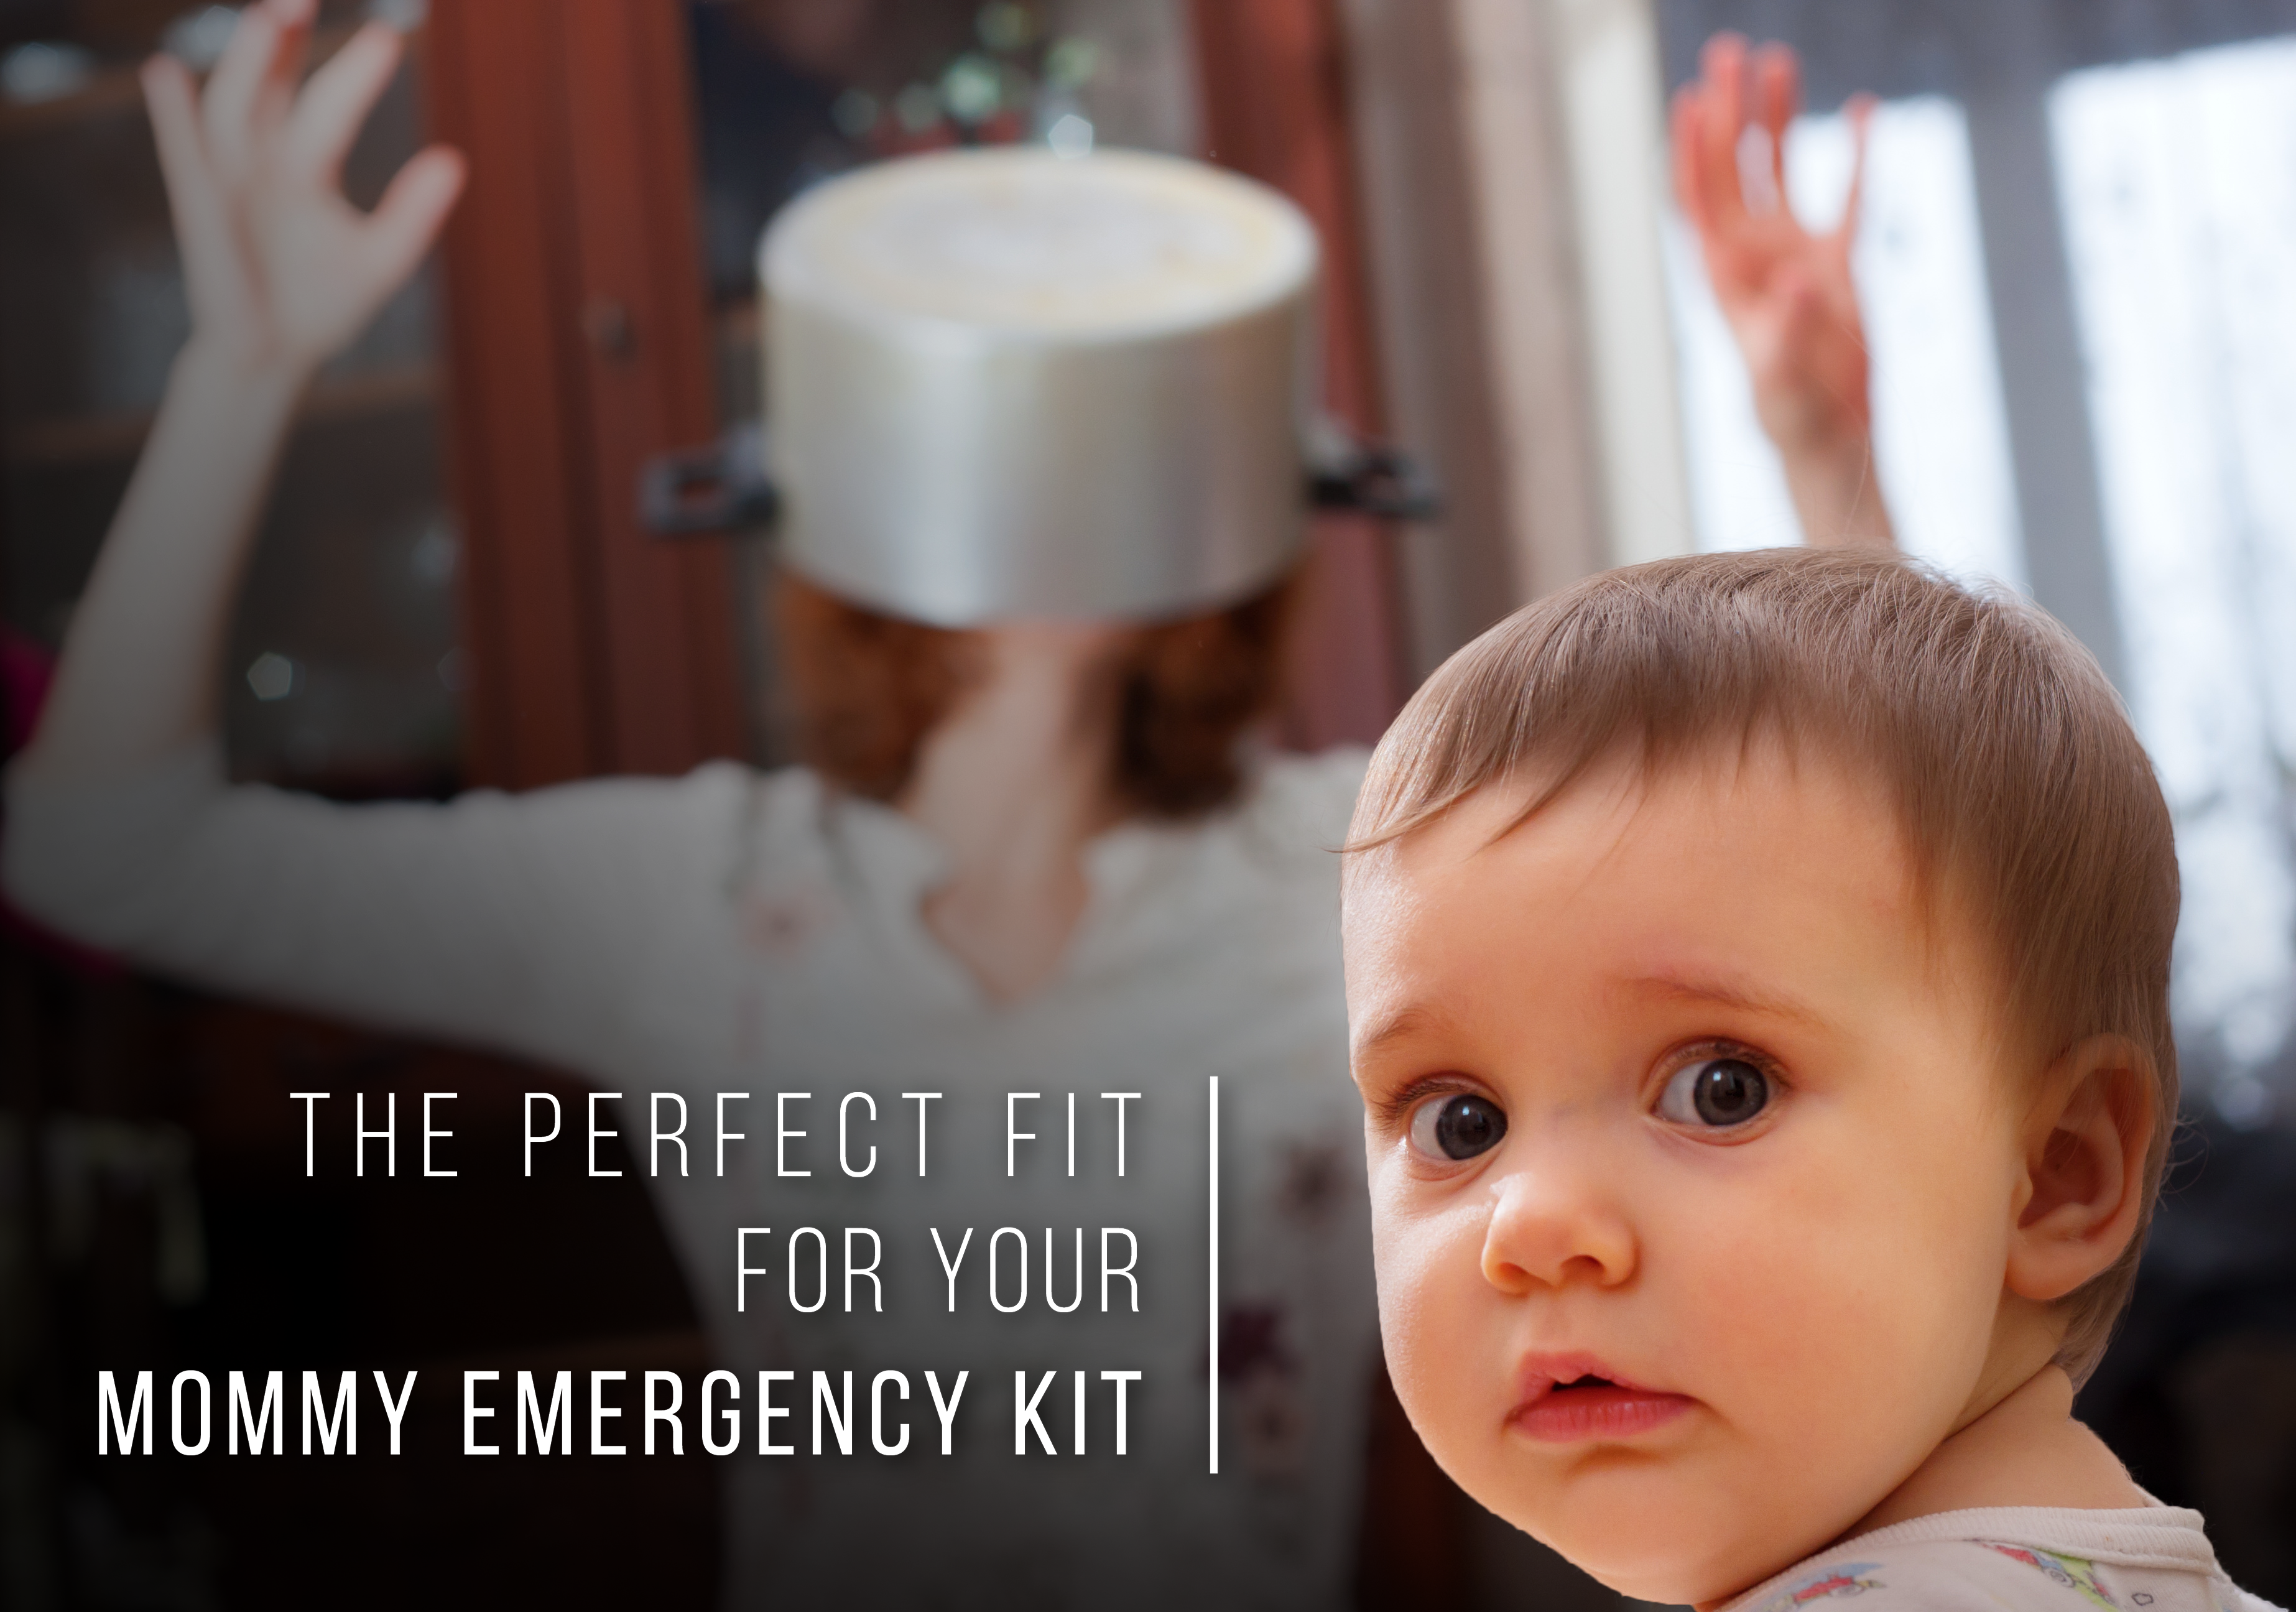 The Perfect Fit for Your Mommy Emergency Kit